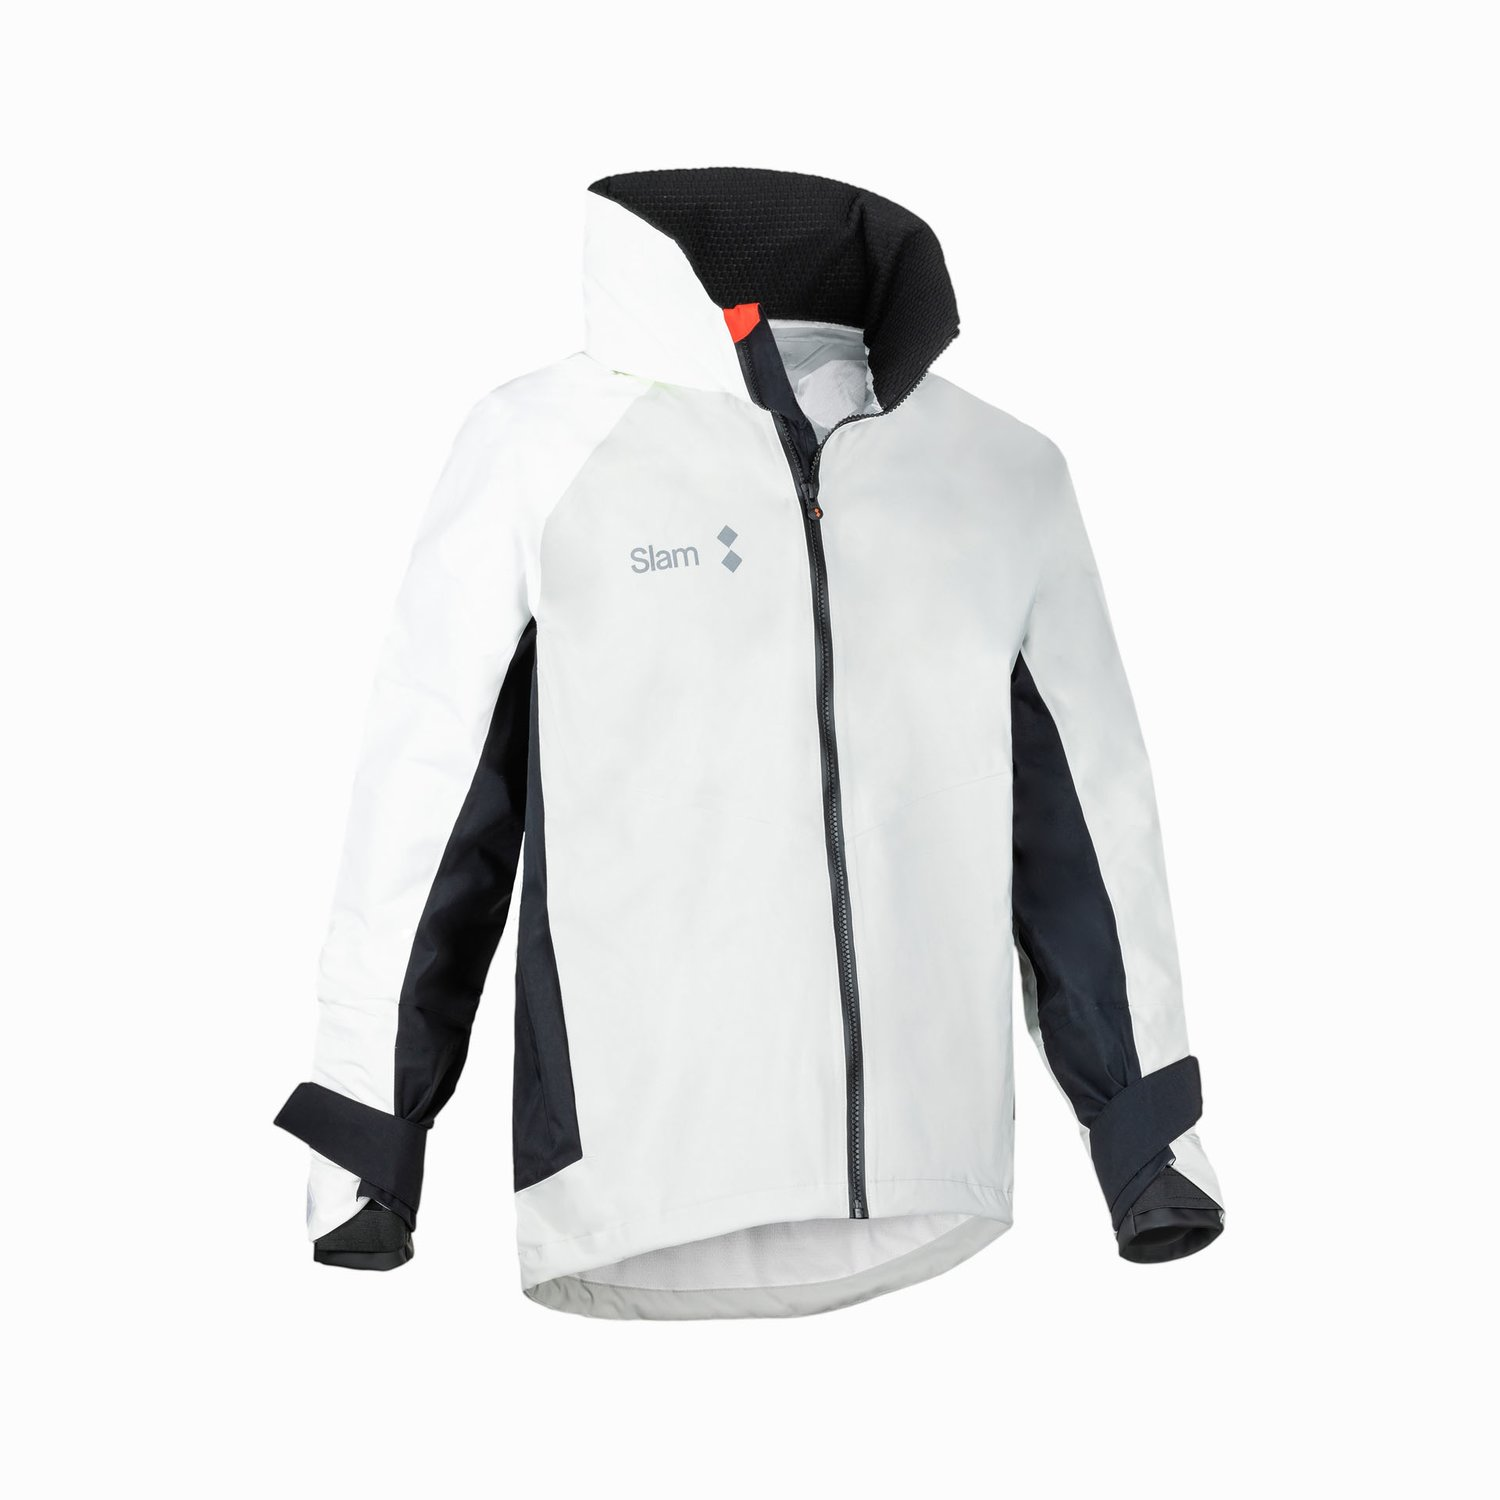 WIN-D 3 COASTAL JACKET - Gris / Blanco / Negro